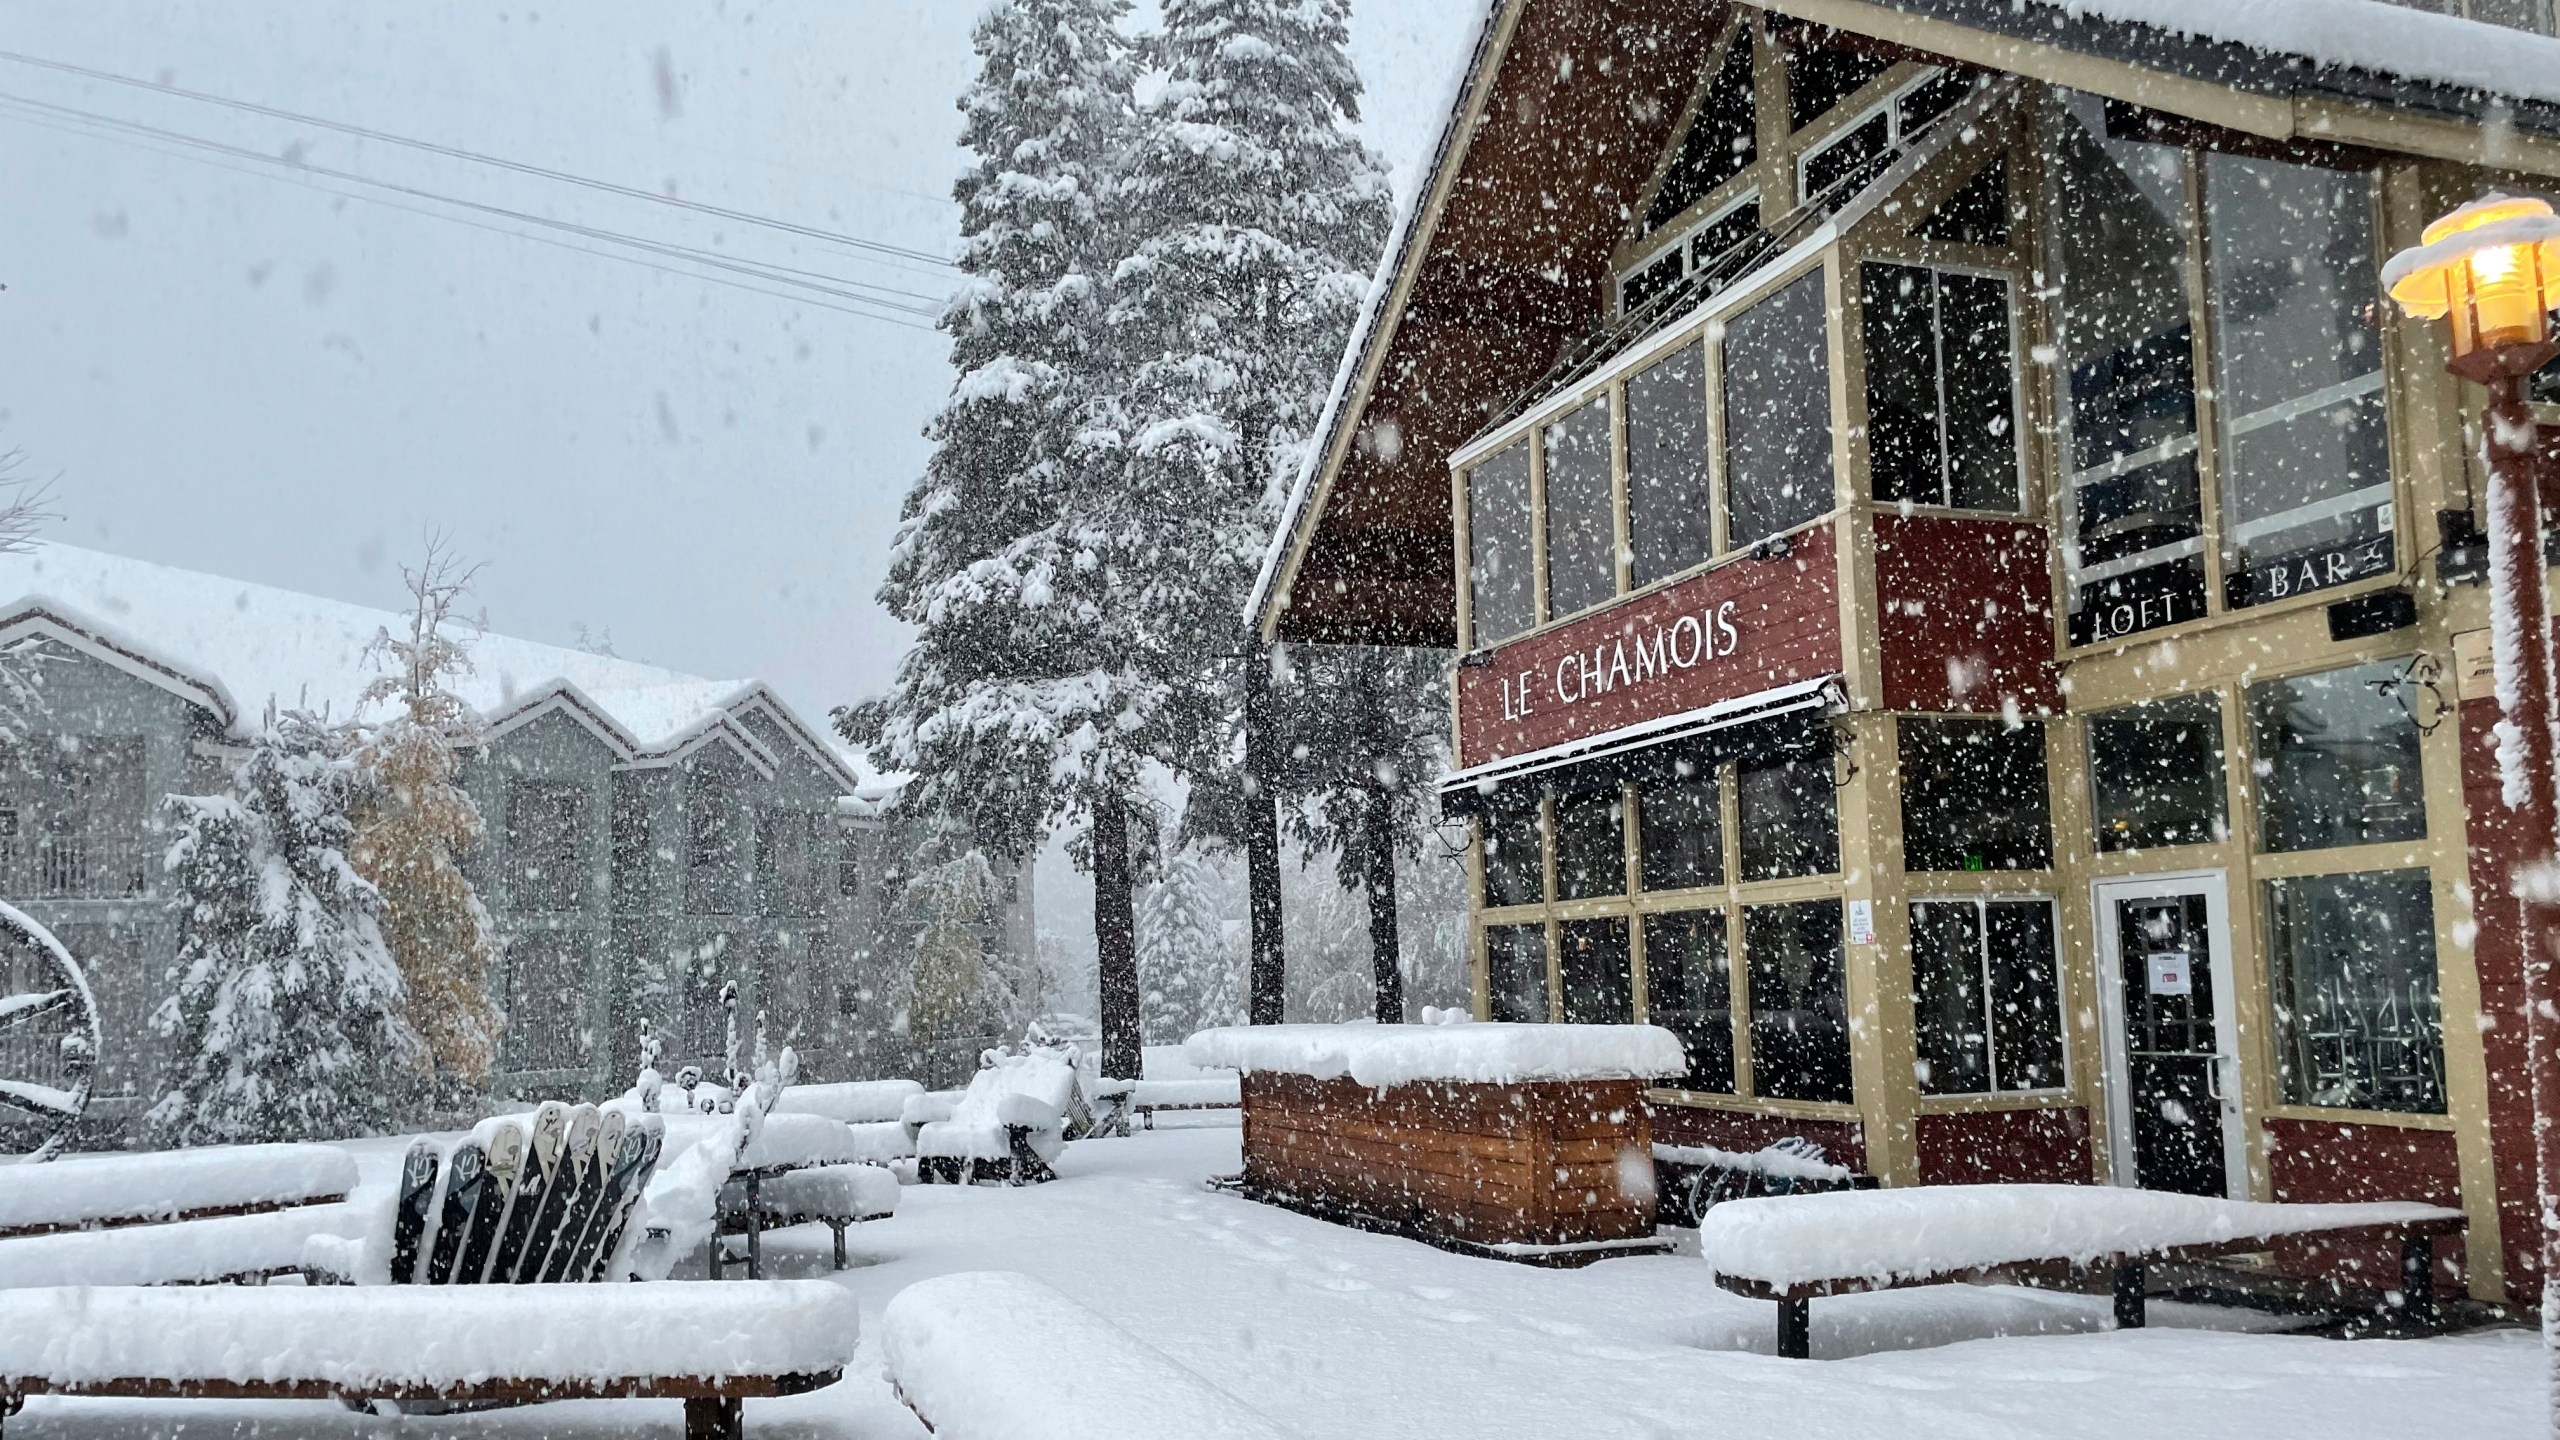 In this image taken on Oct. 25, 2021, and provided by Palisades Tahoe, snow falls at the ski resort in Olympic Valley, Calif. (Palisades Tahoe via AP)